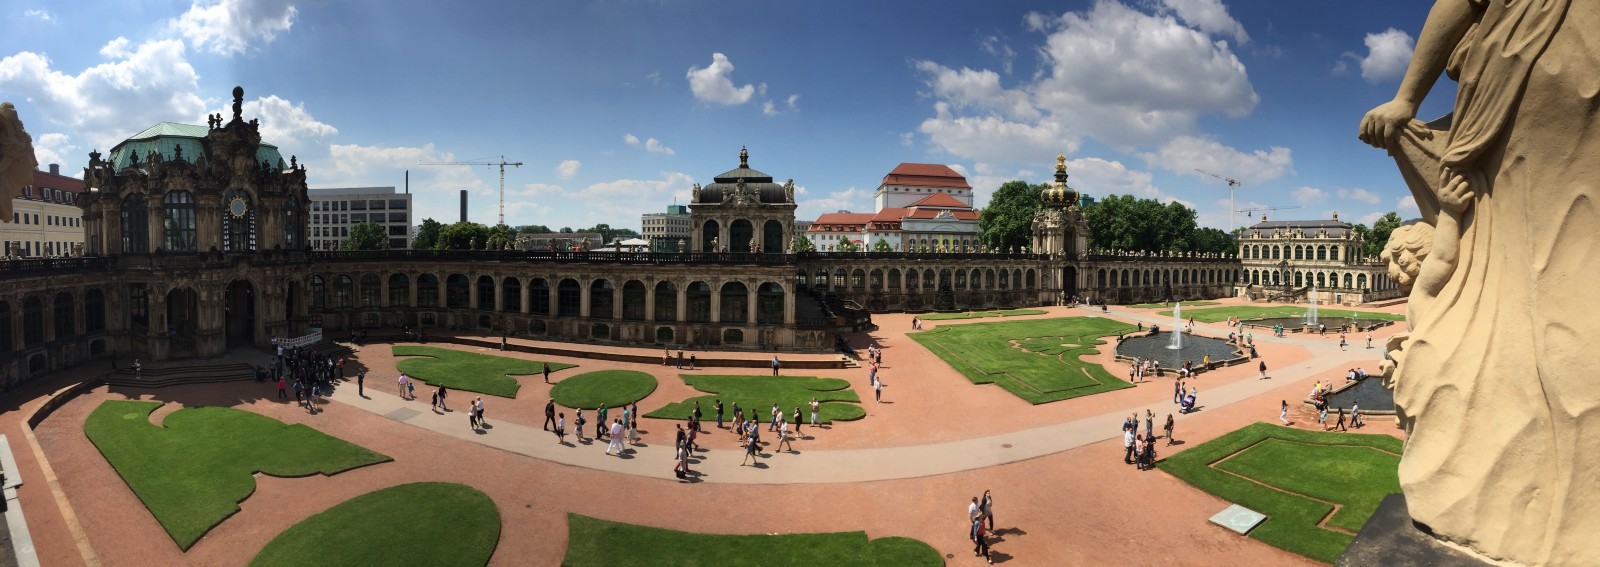 Zwinger grounds